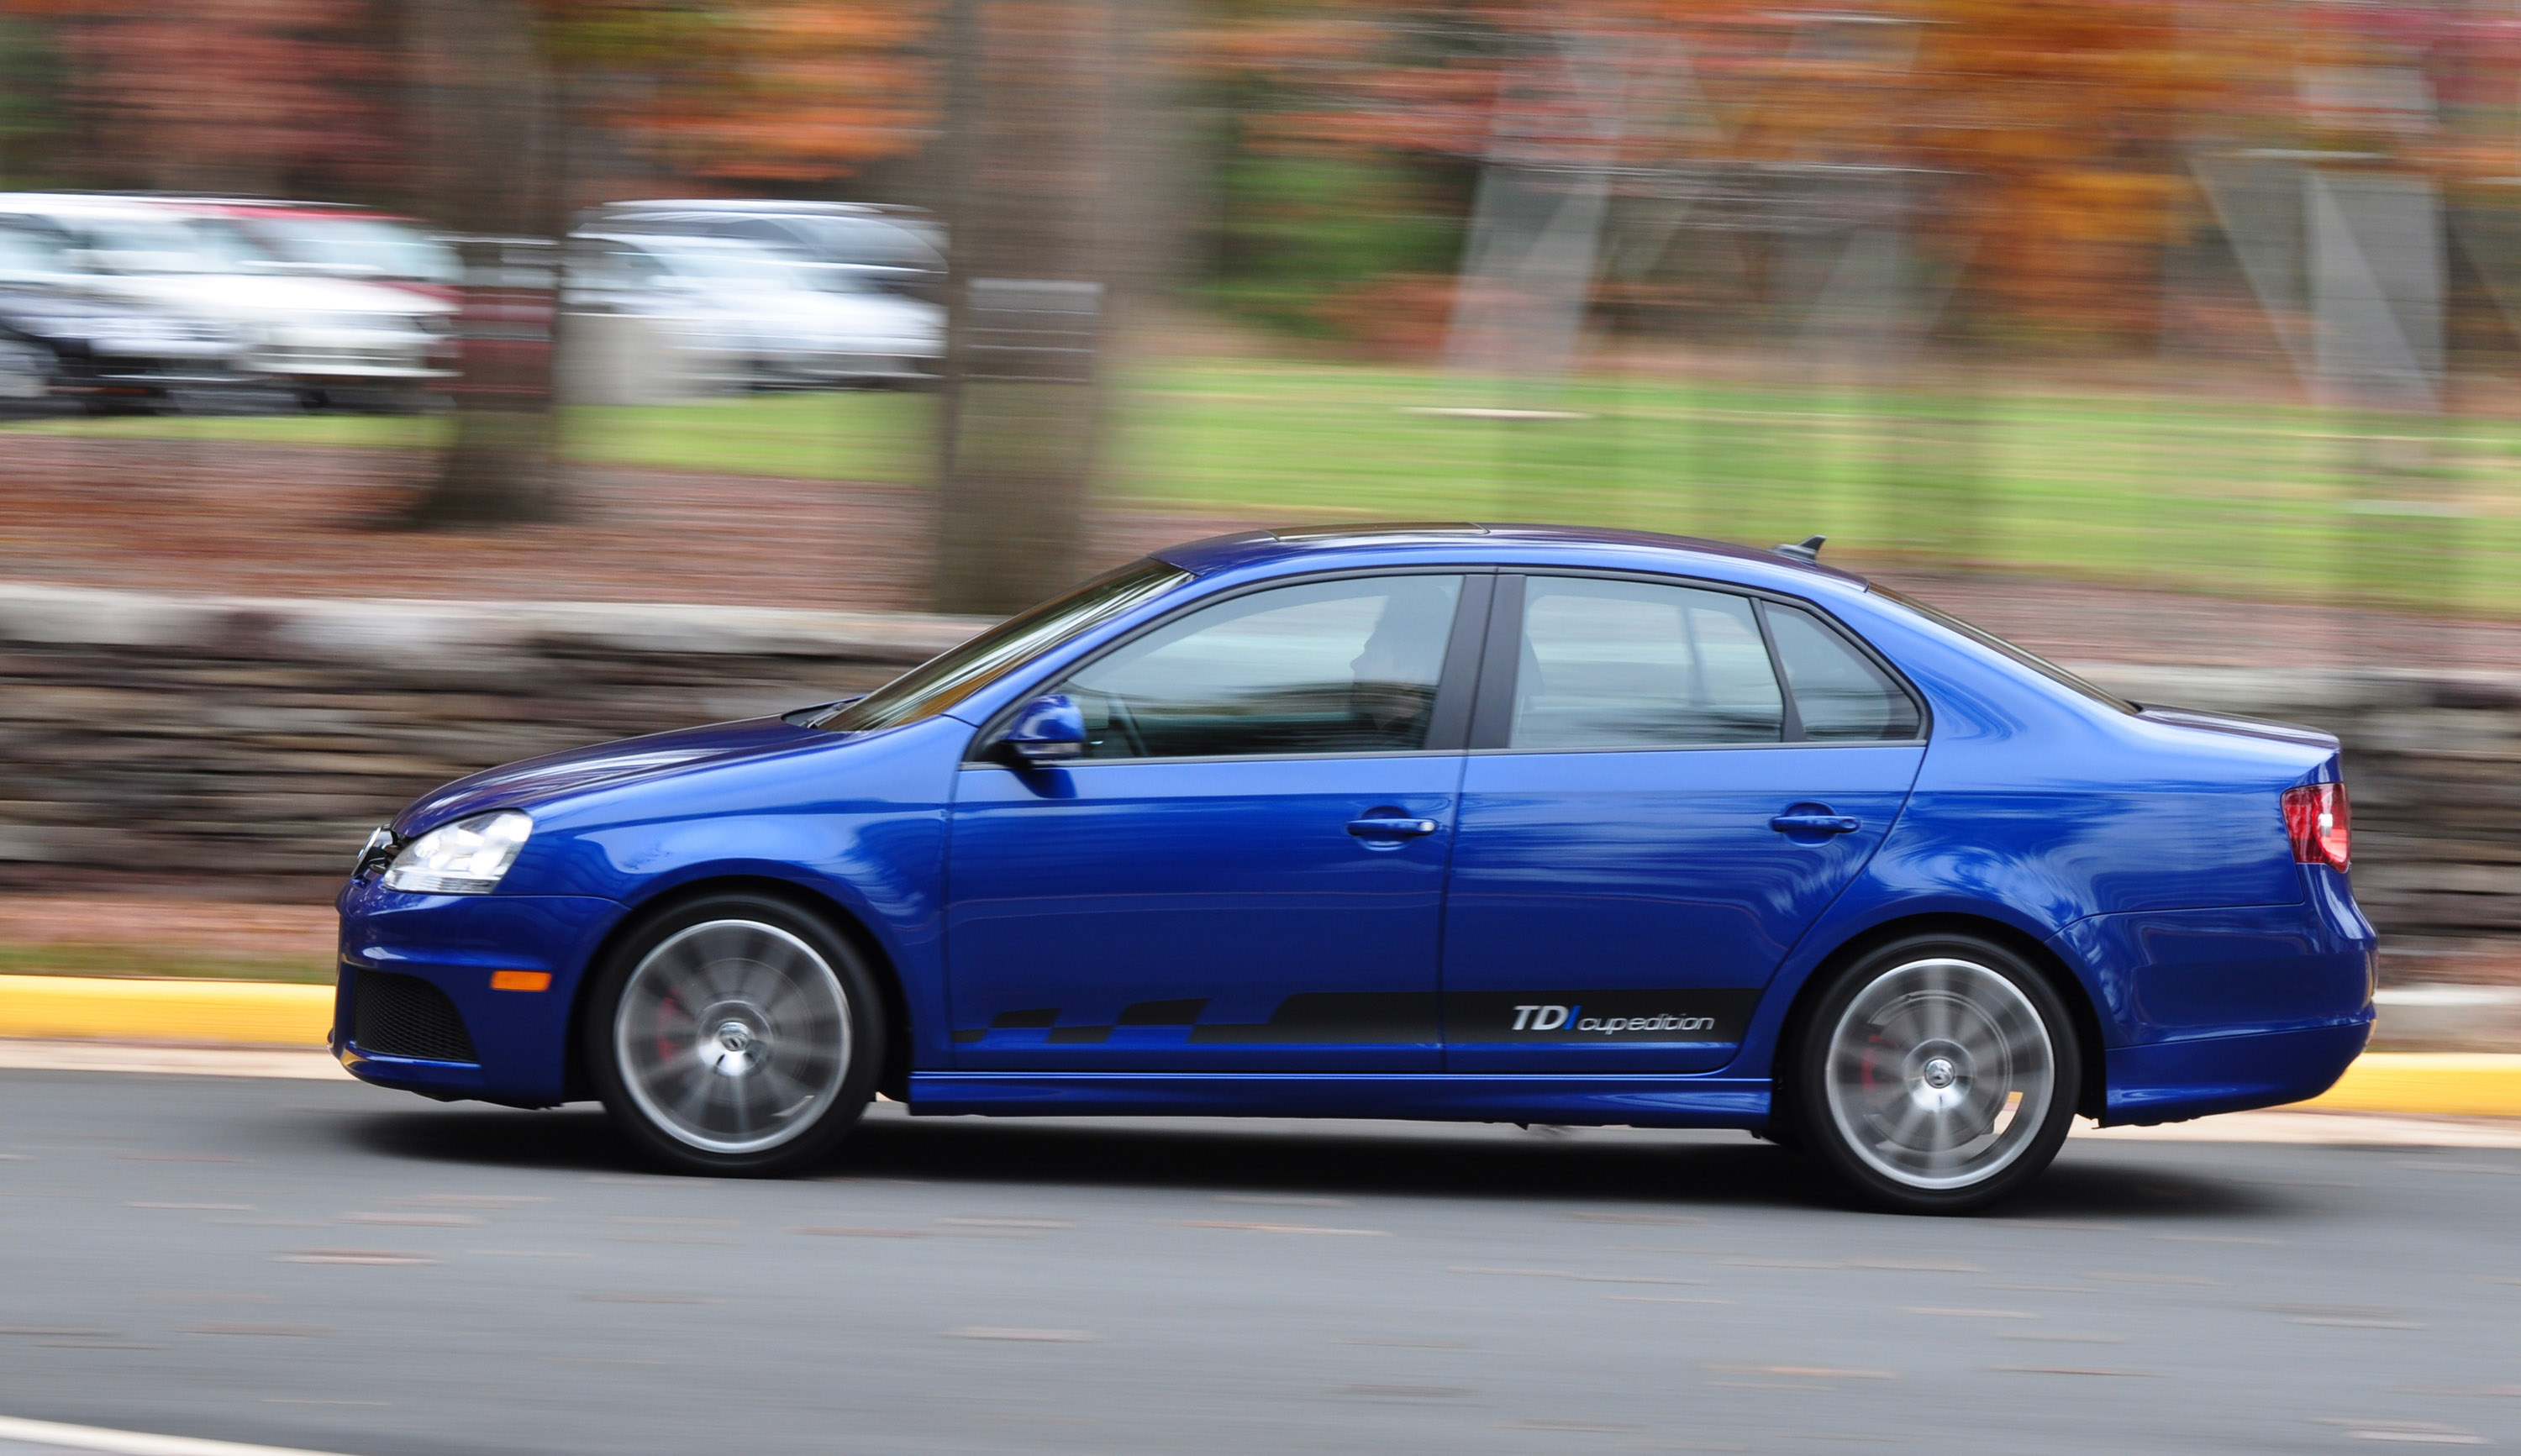 2010 VW Jetta TDI Cup Street Edition - enthusiasts are gonna love it